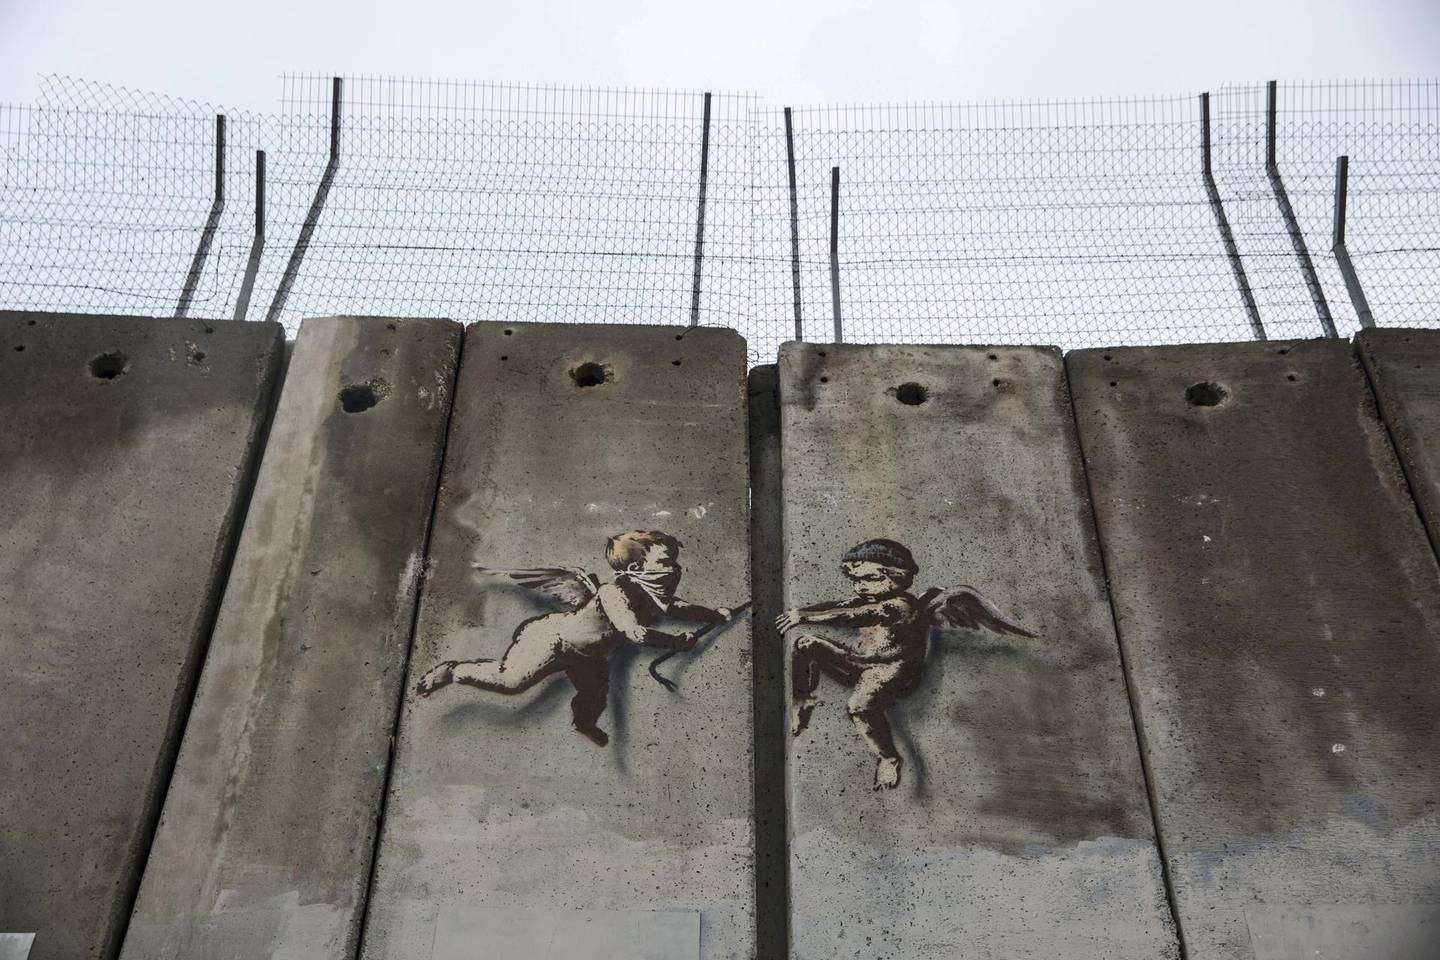 """Street artist Banksy work from last Christmas season on the 8 meter high separation wall built by Israel by his """"Walled Off Hotel"""" in Bethlehem.The angels are painted where by a slight gap, and appears that as if the two angels on either side of the gap, breaking through the wall.(Photo by Heidi Levine for The National)."""